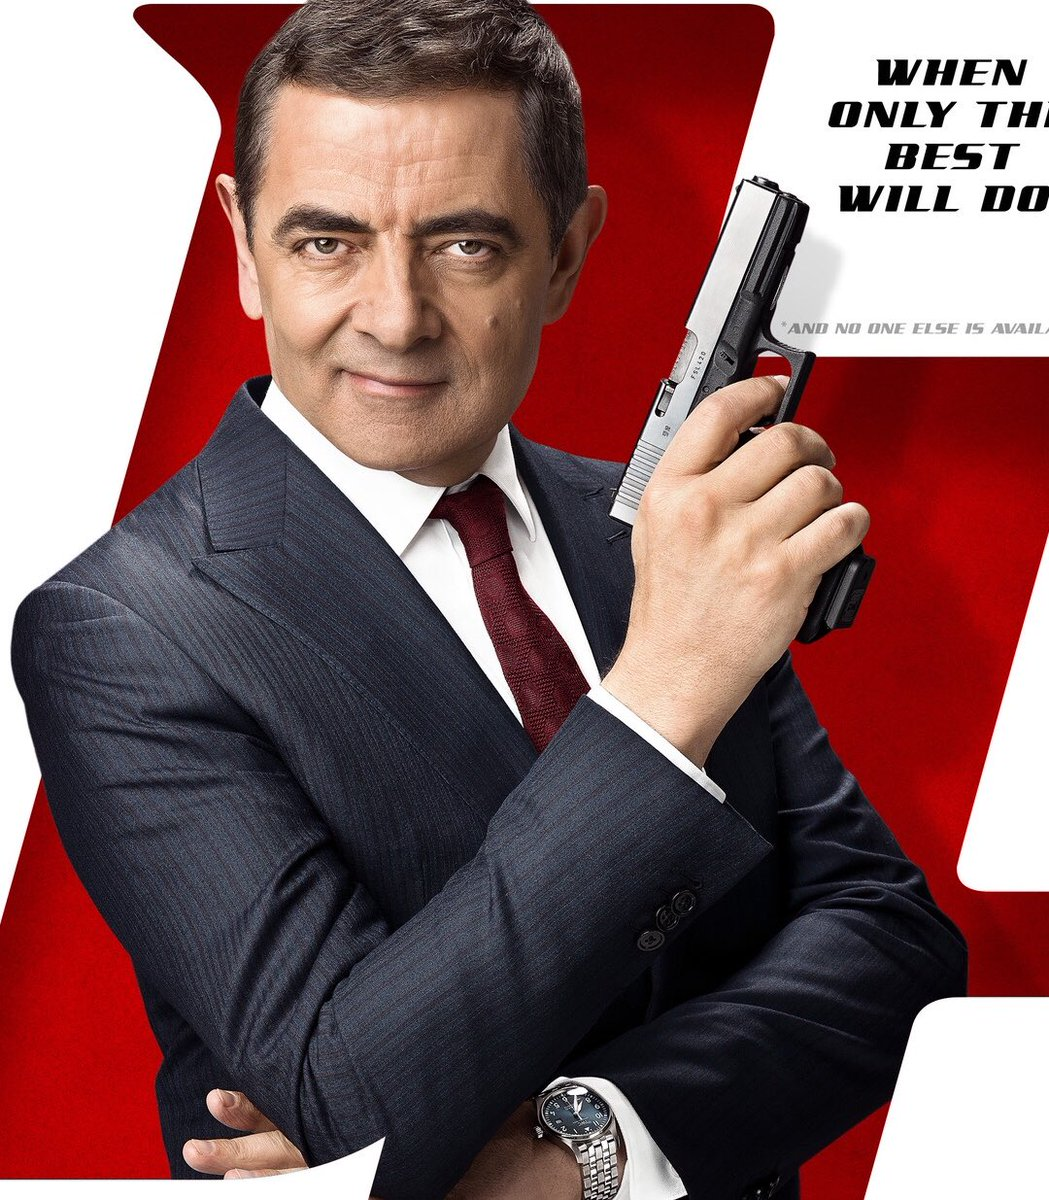 """Now my older (&amp; I would say uglier) brother has occasionally been mistaken for #RowanAtkinson (&amp; Marc Almond) which made it a little close to home when taking Millie n' Matt to the brilliant new #Johnnyenglish film, he uses the name """"Basil Golightly"""". Kids loved it. #Coverblown<br>http://pic.twitter.com/x2GUTLKMmF"""